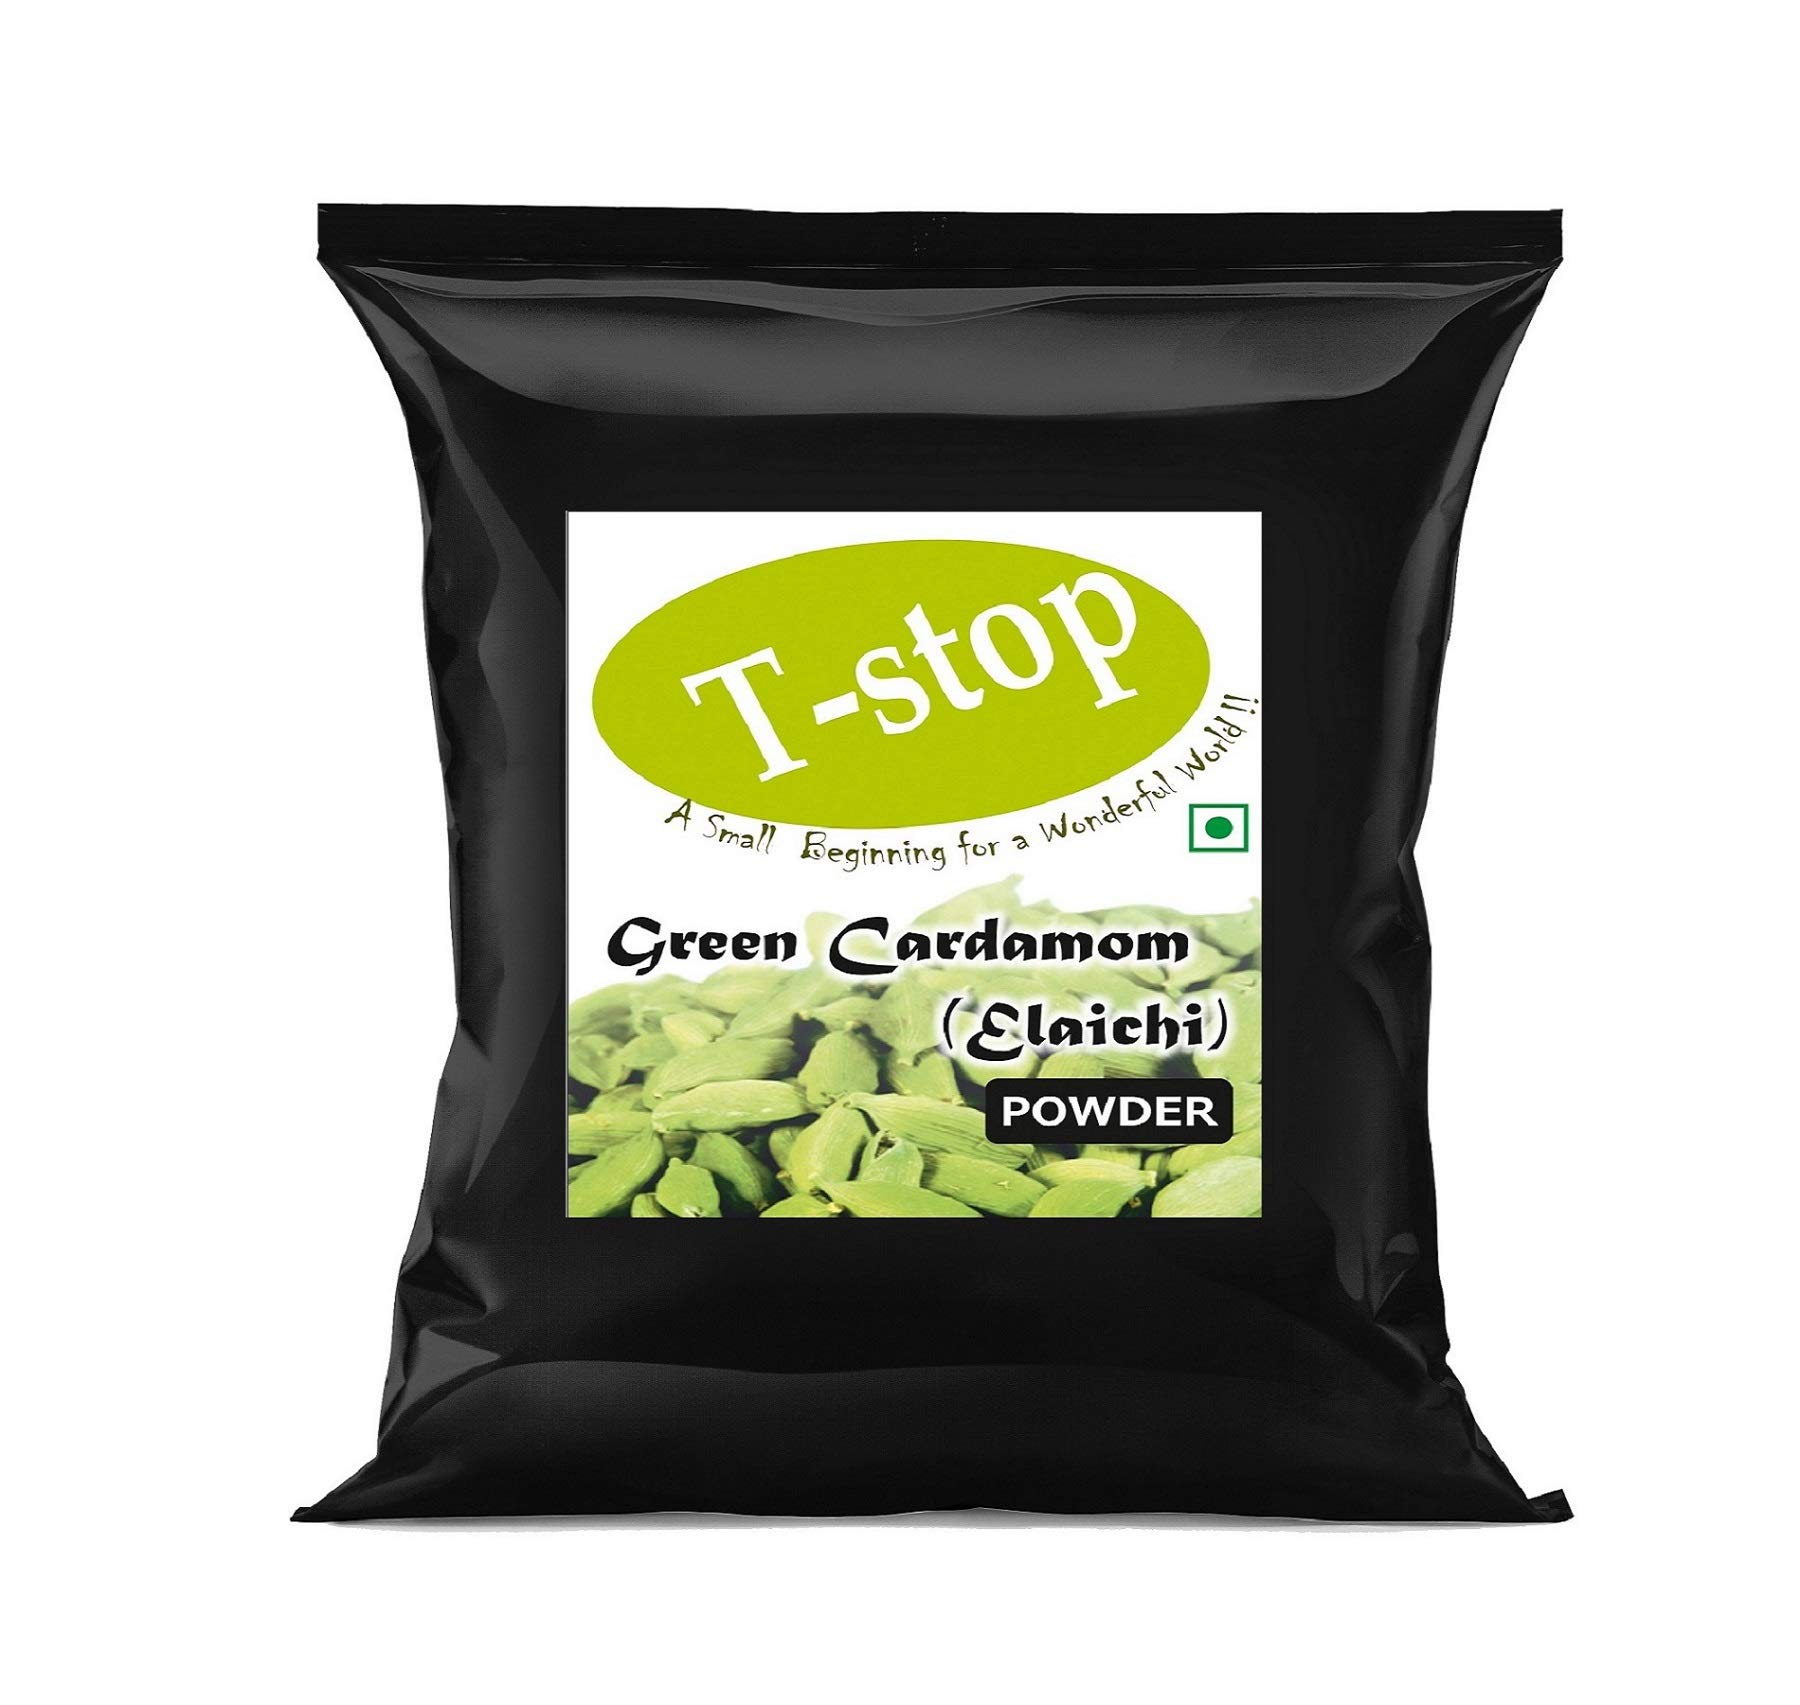 T-stop Green Cardamom Powder Both Pods & Seeds Included Pack of 2- Each 25gm